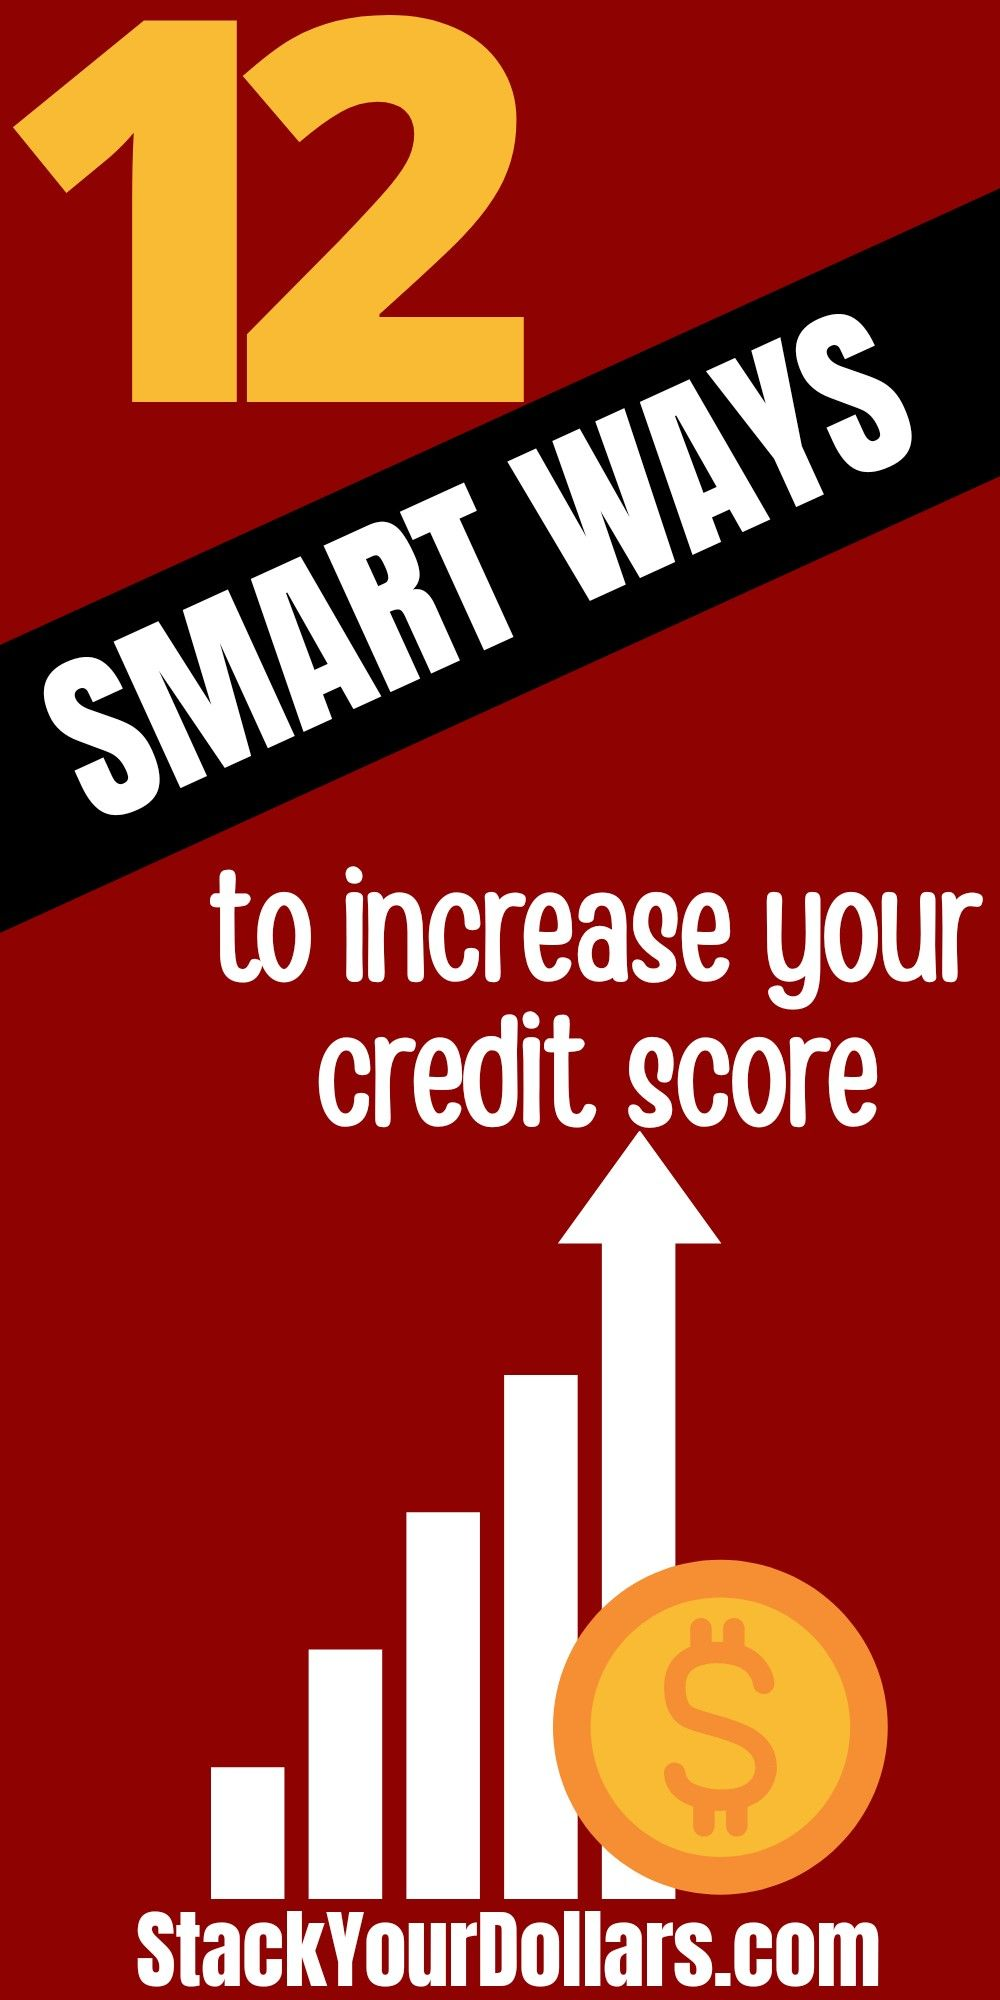 Smart credit repair tips that you can use to increase your credit score fast. A high credit score will lower the interest rate you'll pay on debts and much more. #StackYourDollars